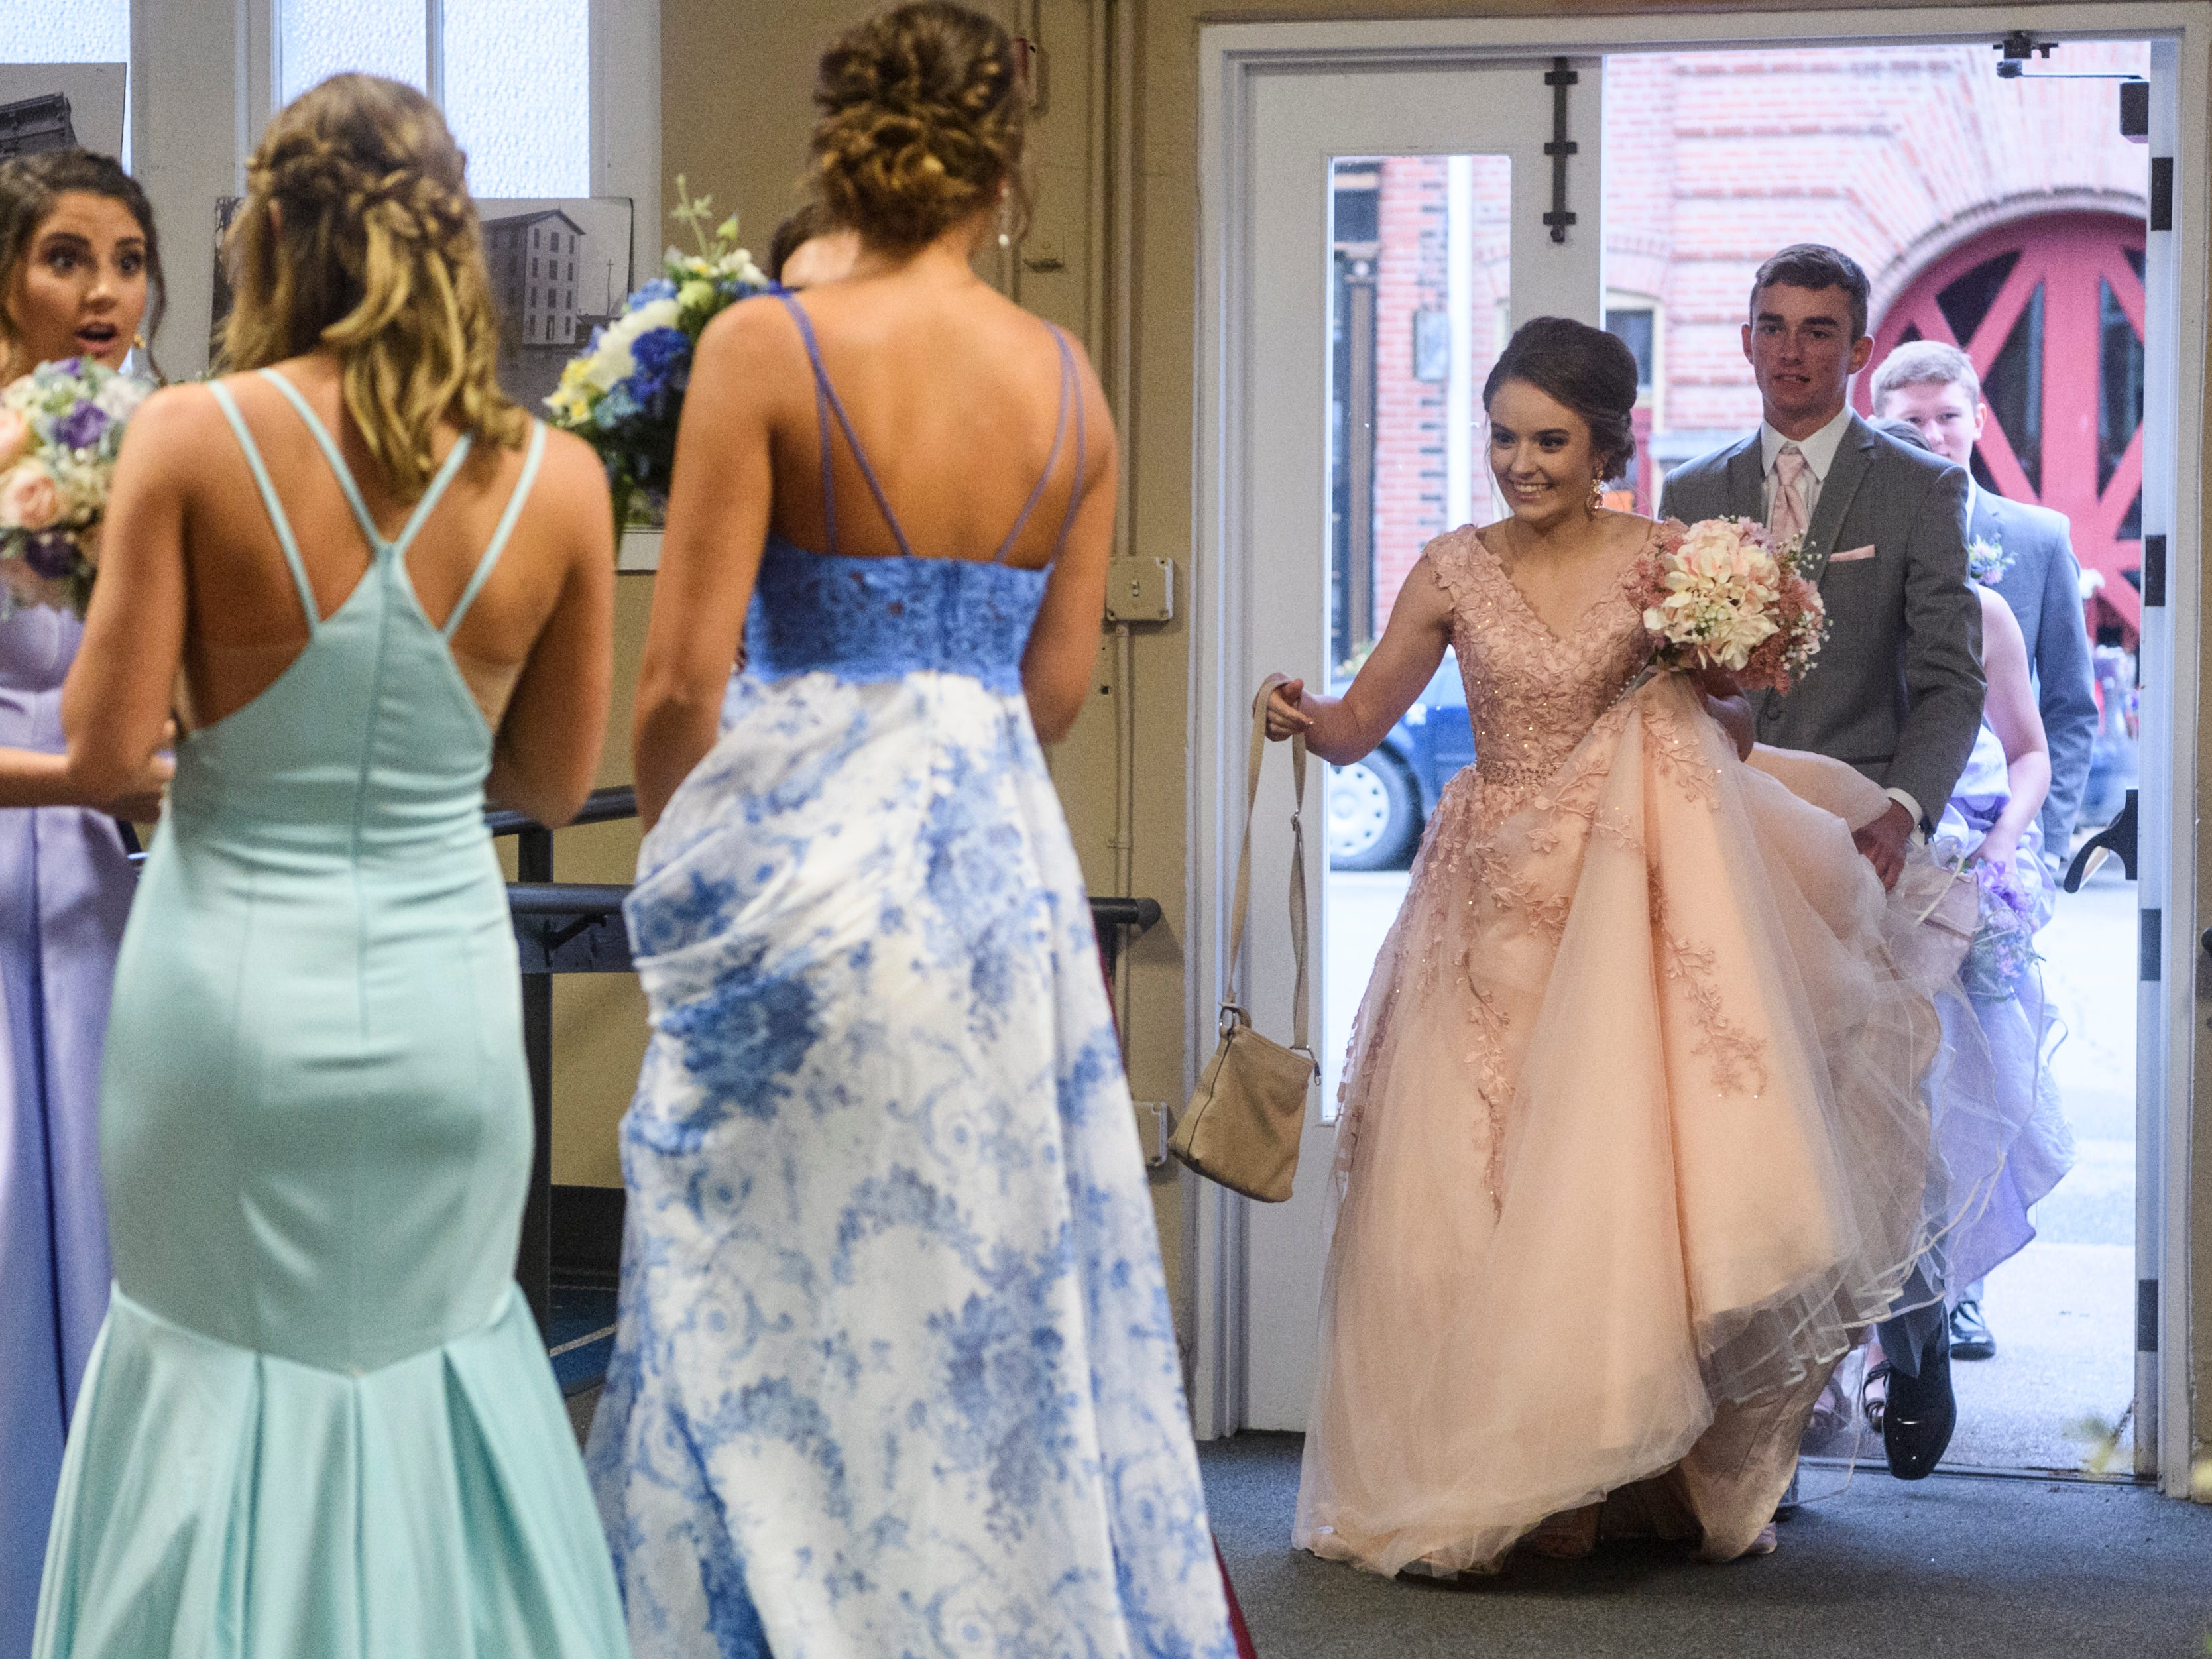 North Posey senior Emily Fortune, center right, smiles as she is greeted by friends as she and her prom date Johnson Koester walk into the Ribeyre Center in New Harmony, Ind., Saturday, May 4, 2019. About 240 tickets were sold for this year's prom.